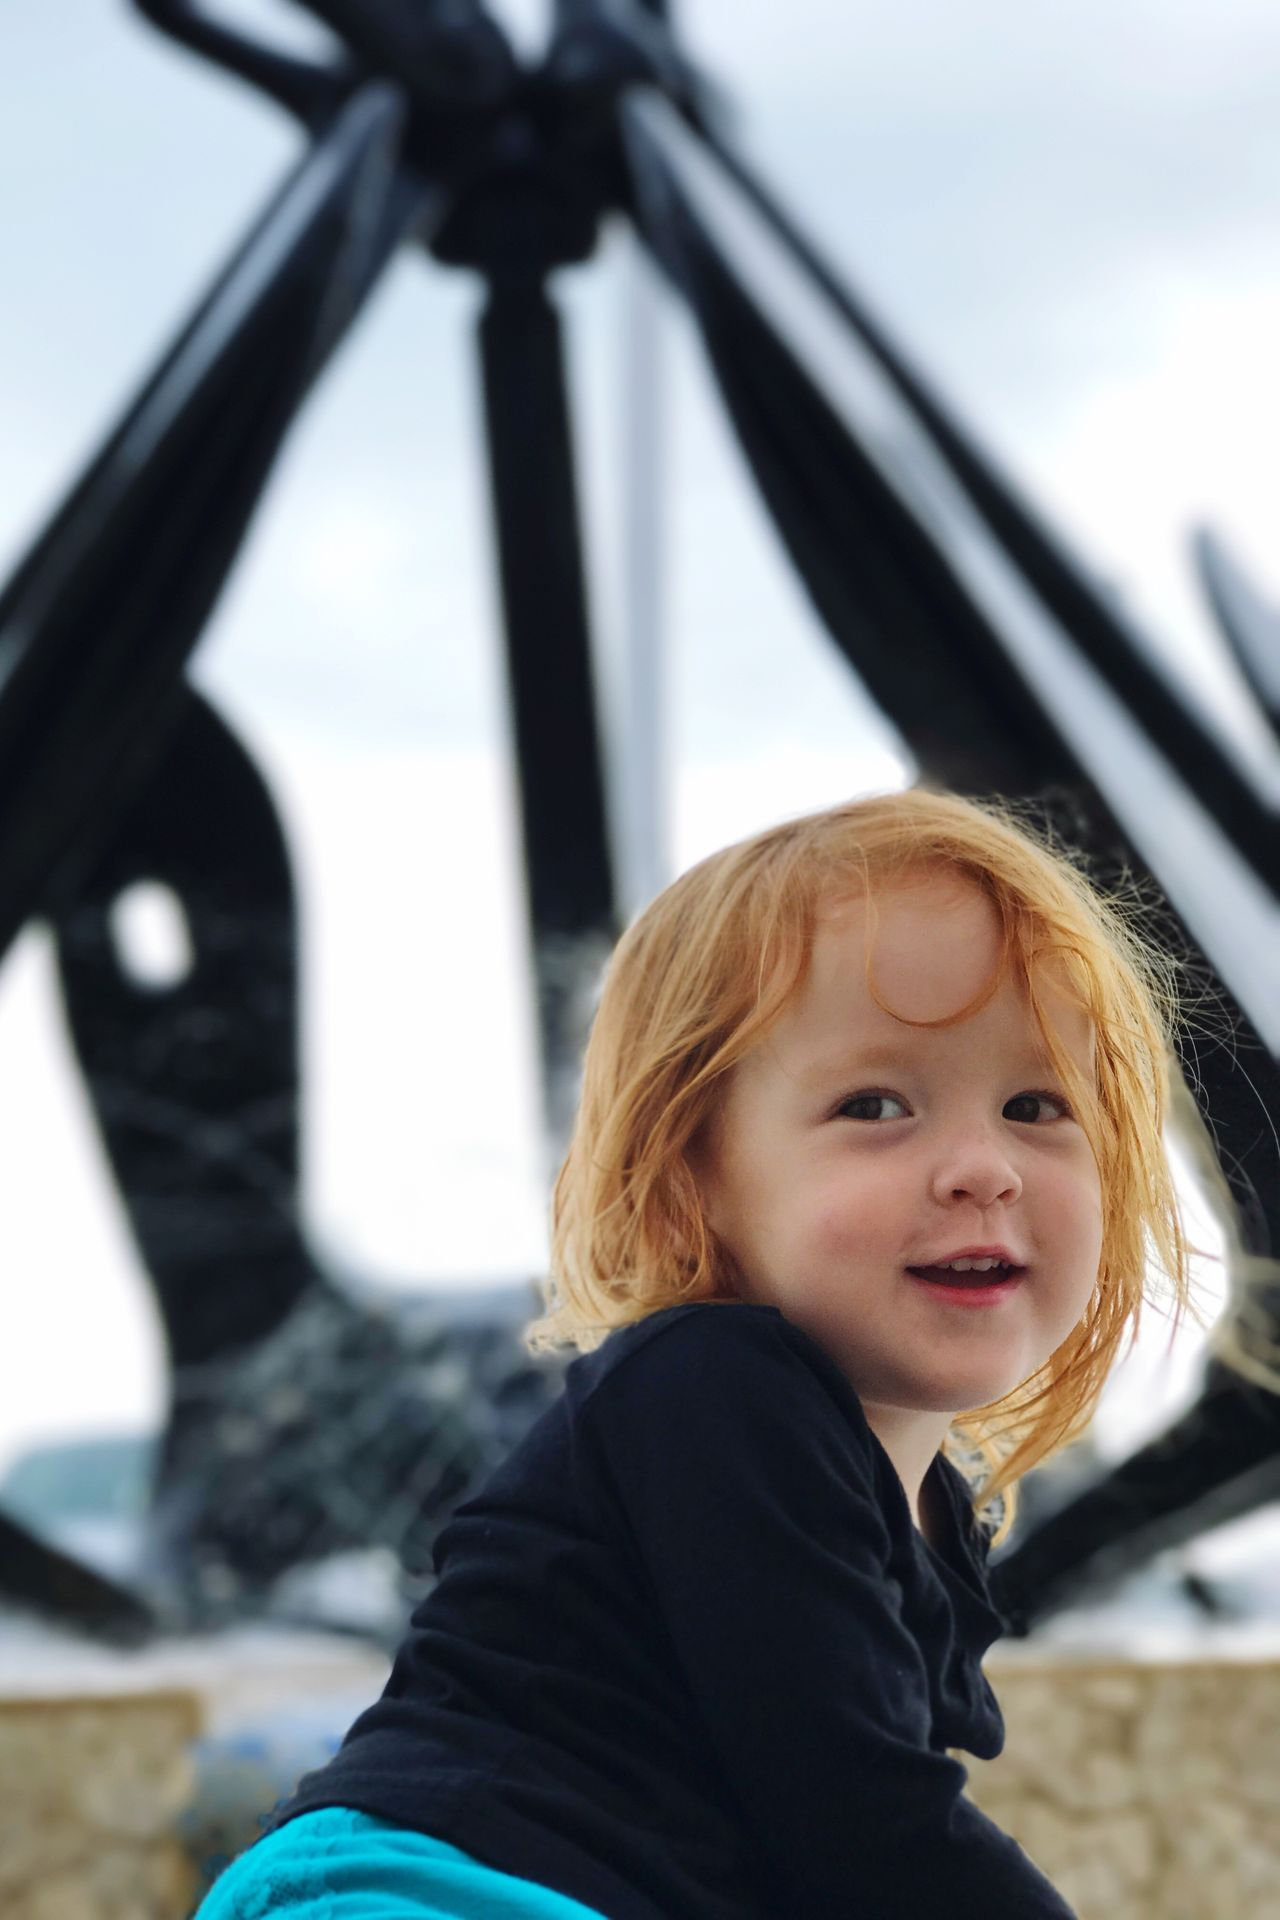 Fountain Fun Bermuda Dockyard Toddlerlife Redhead Daddydaughtertime Headshot One Person Lifestyles Real People Childhood Day Close-up People